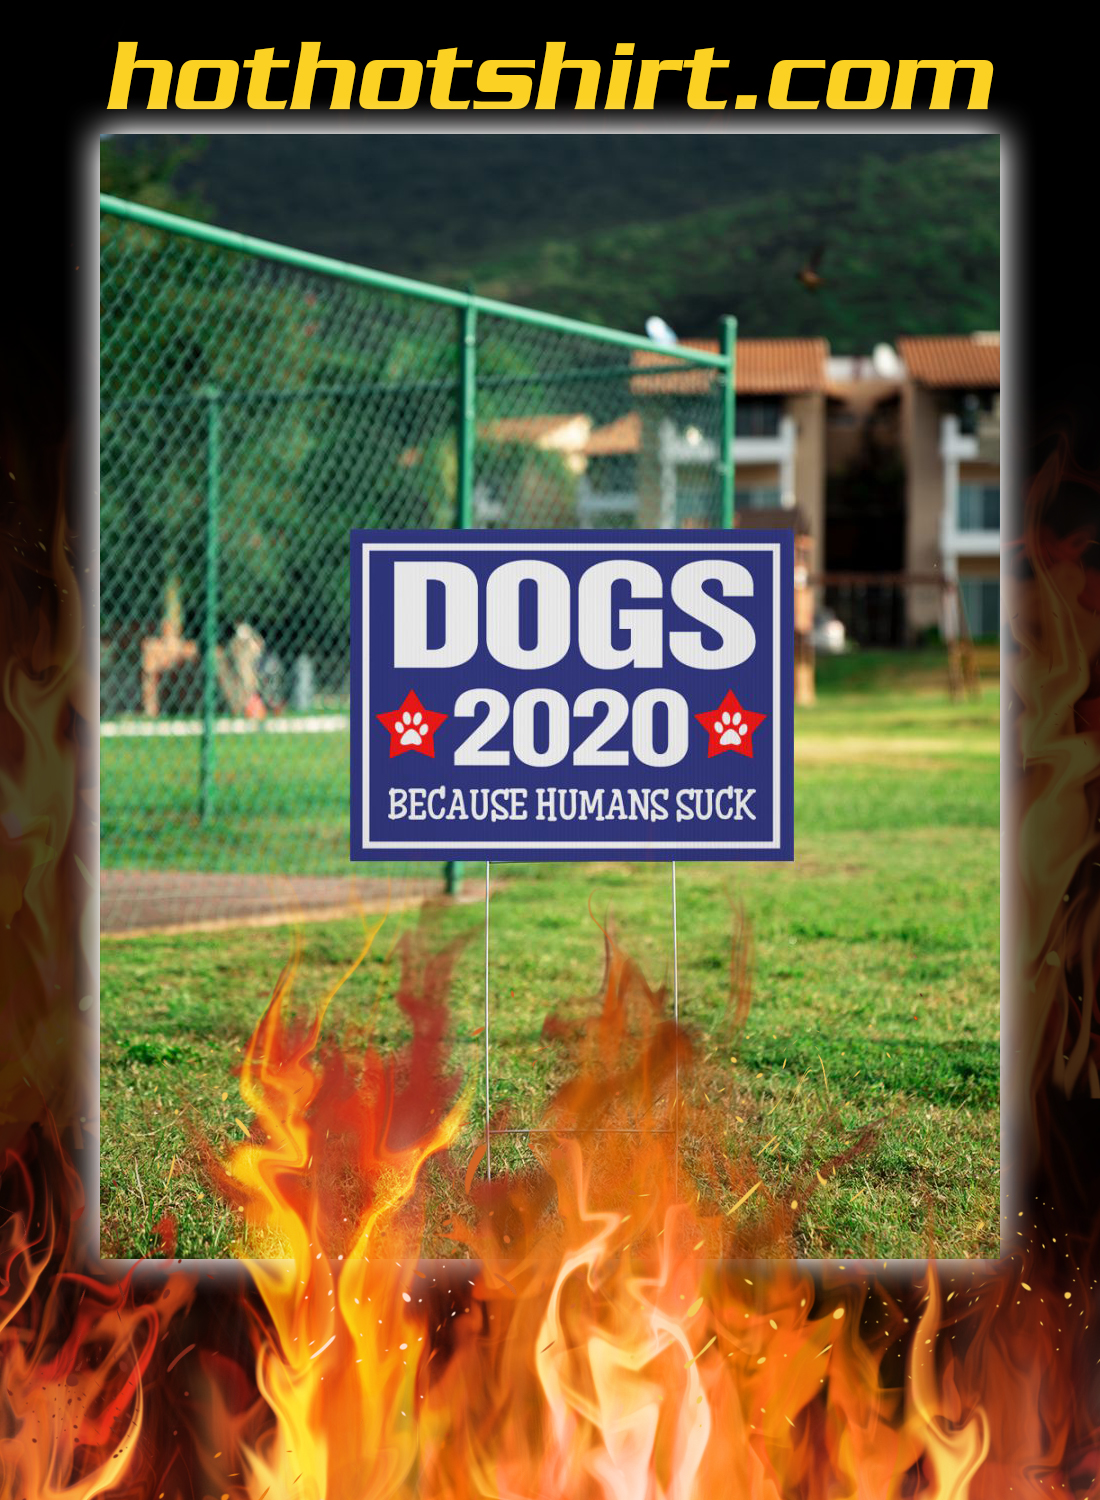 Dogs 2020 because humans suck yard sign 1